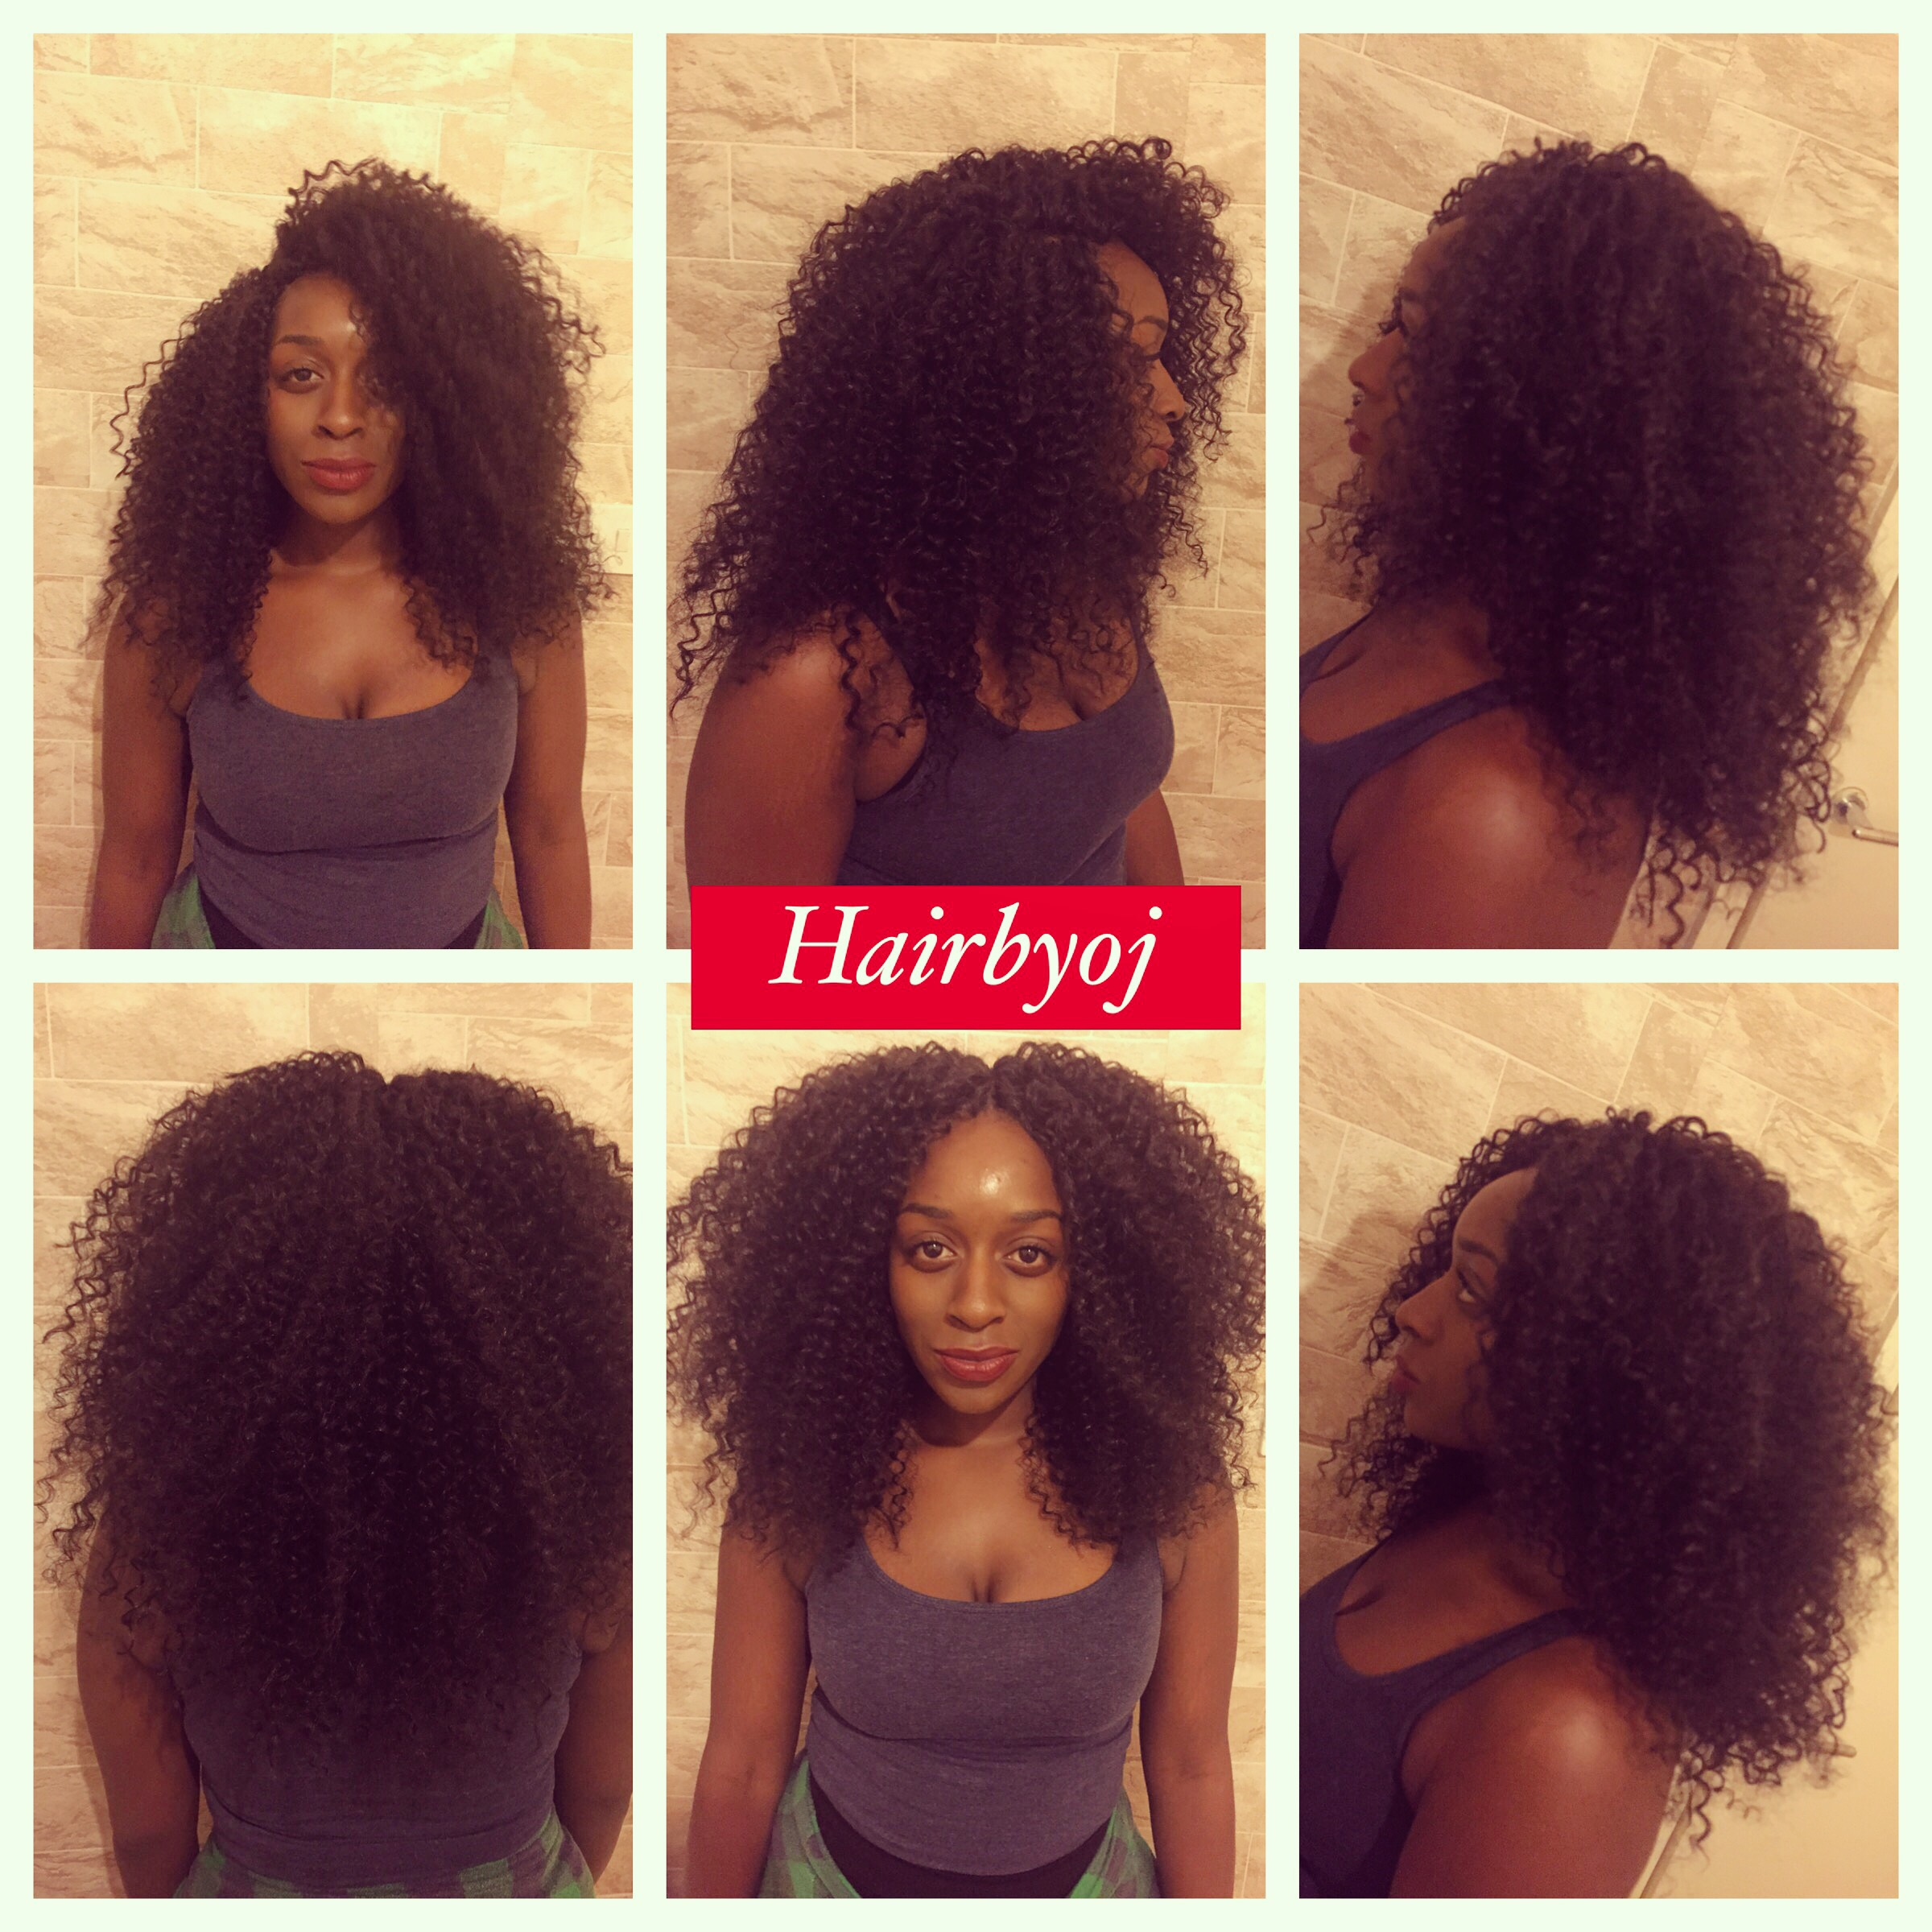 Crochet Hair Versatile : ... curled crochet braids with versatile middle and side knotless parting